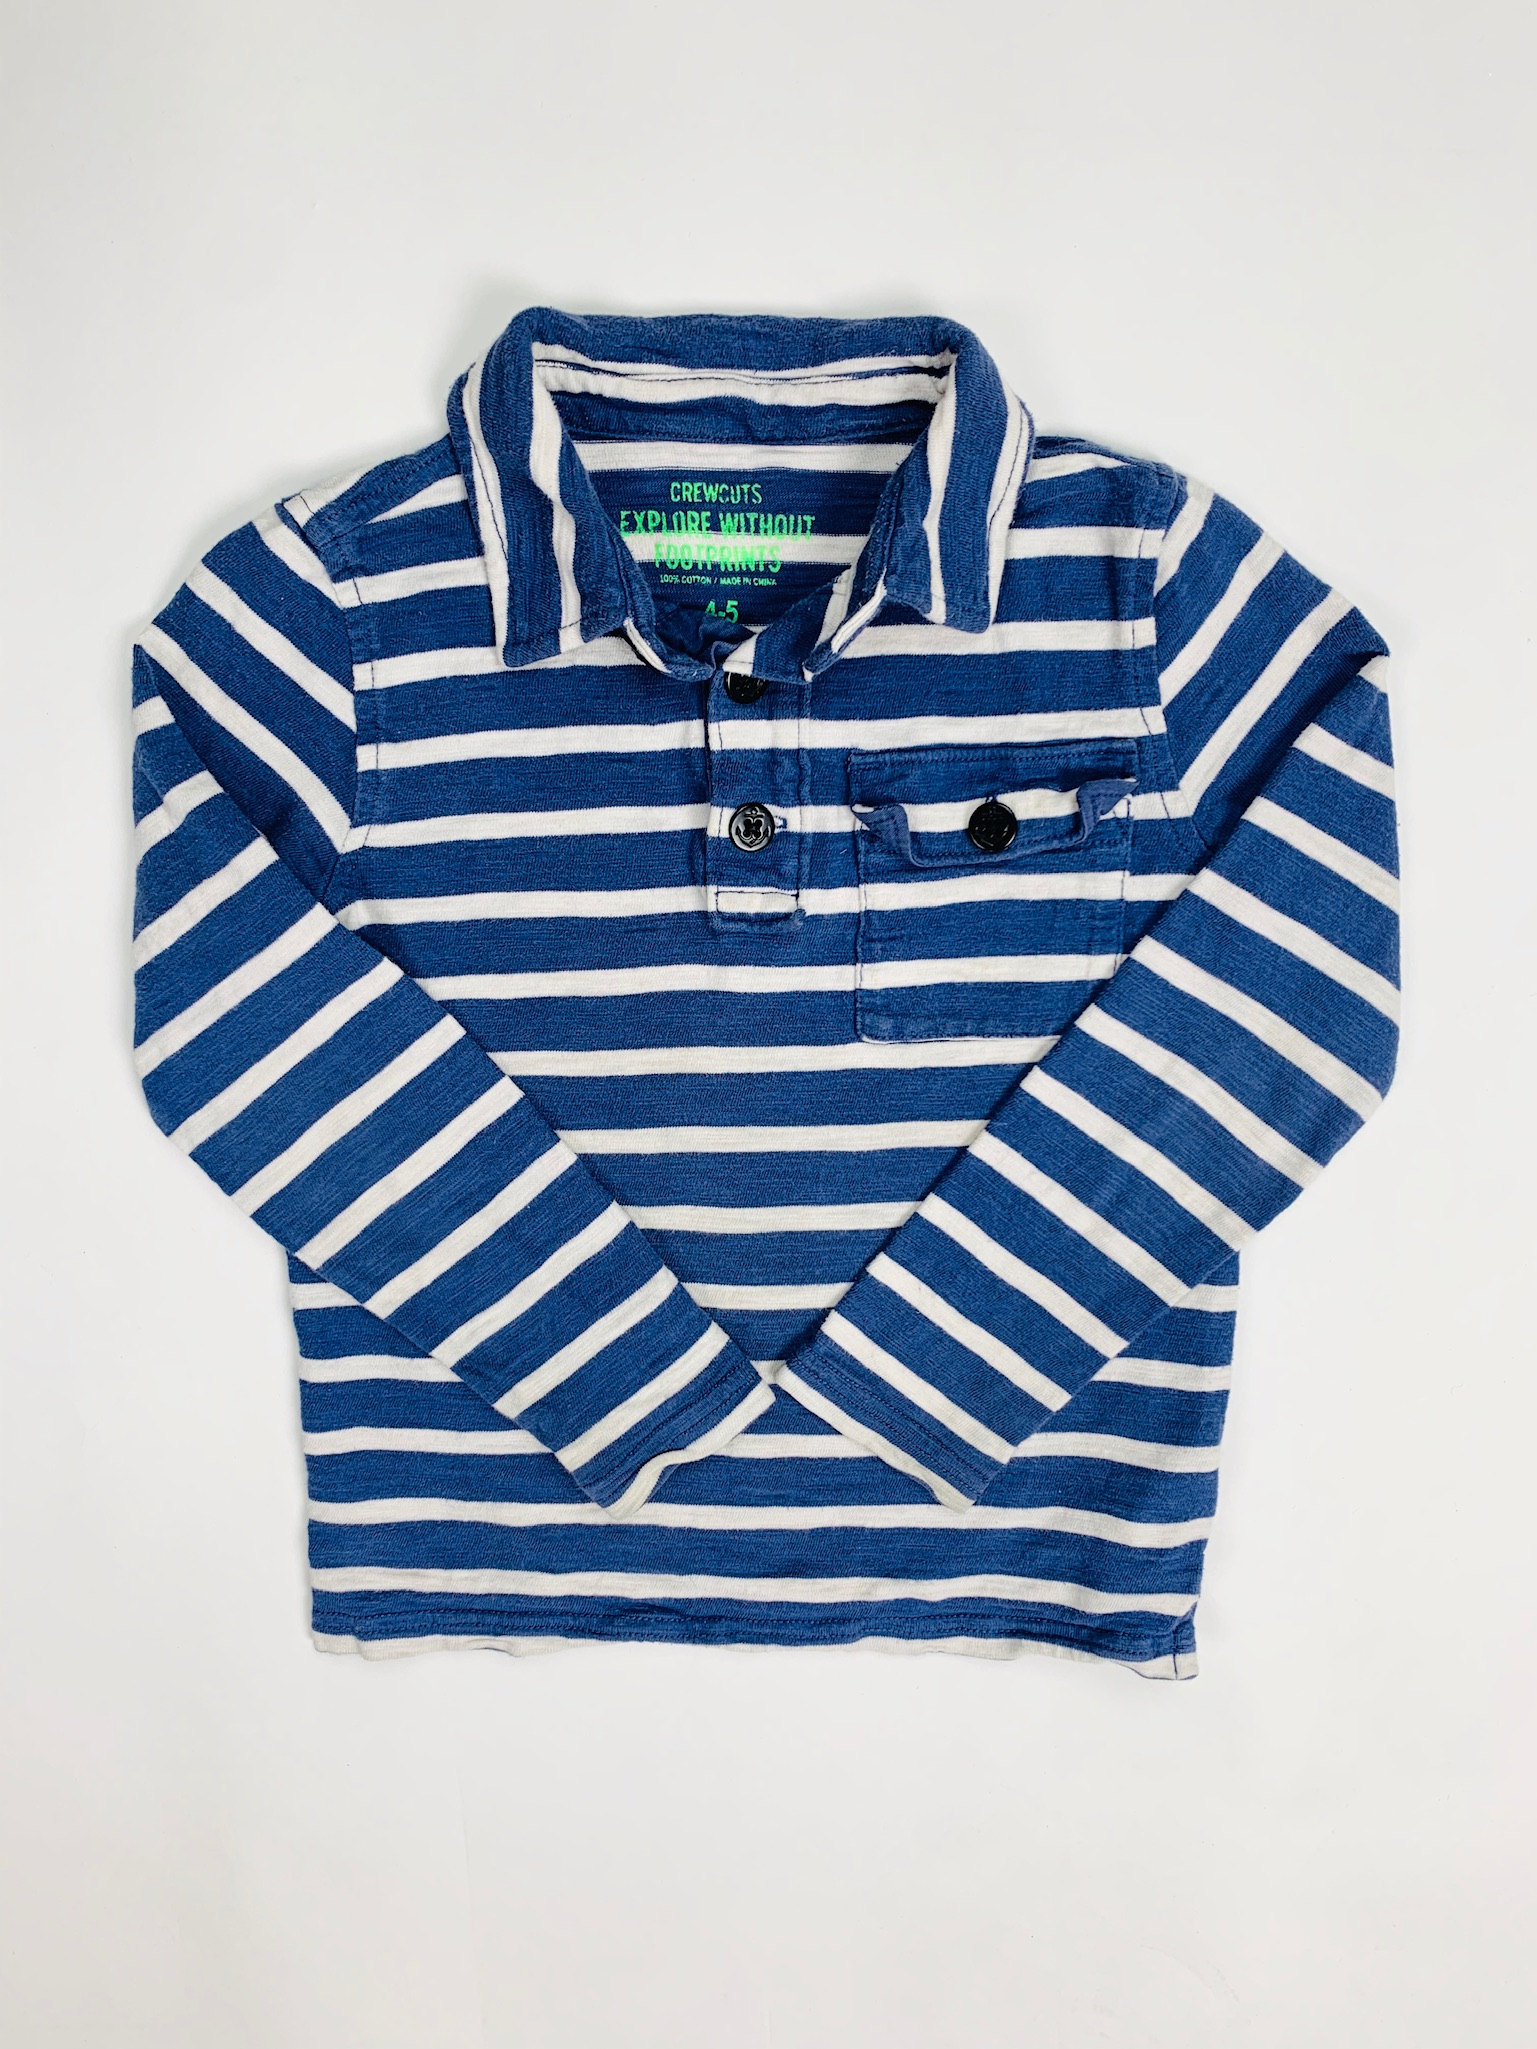 CrewCuts 4-5 Tops and Tees